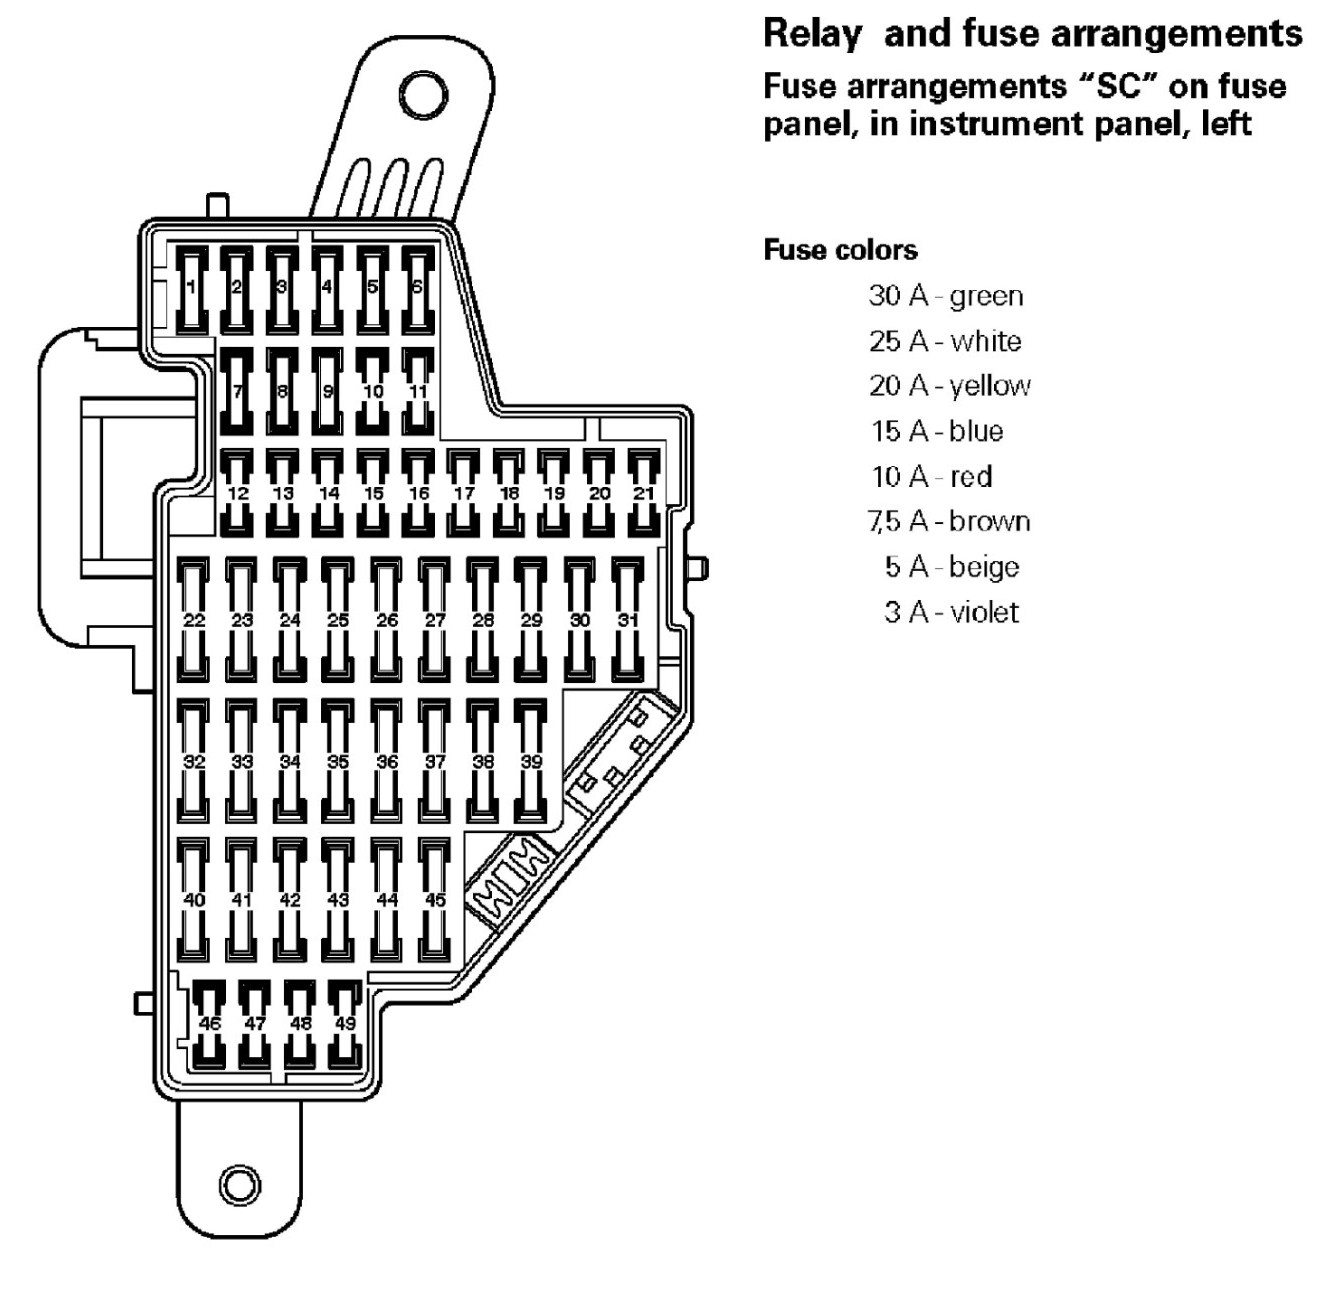 hight resolution of jetta 5 fuse box diagram wiring diagram sheet jetta 5 fuse box diagram wiring diagram show